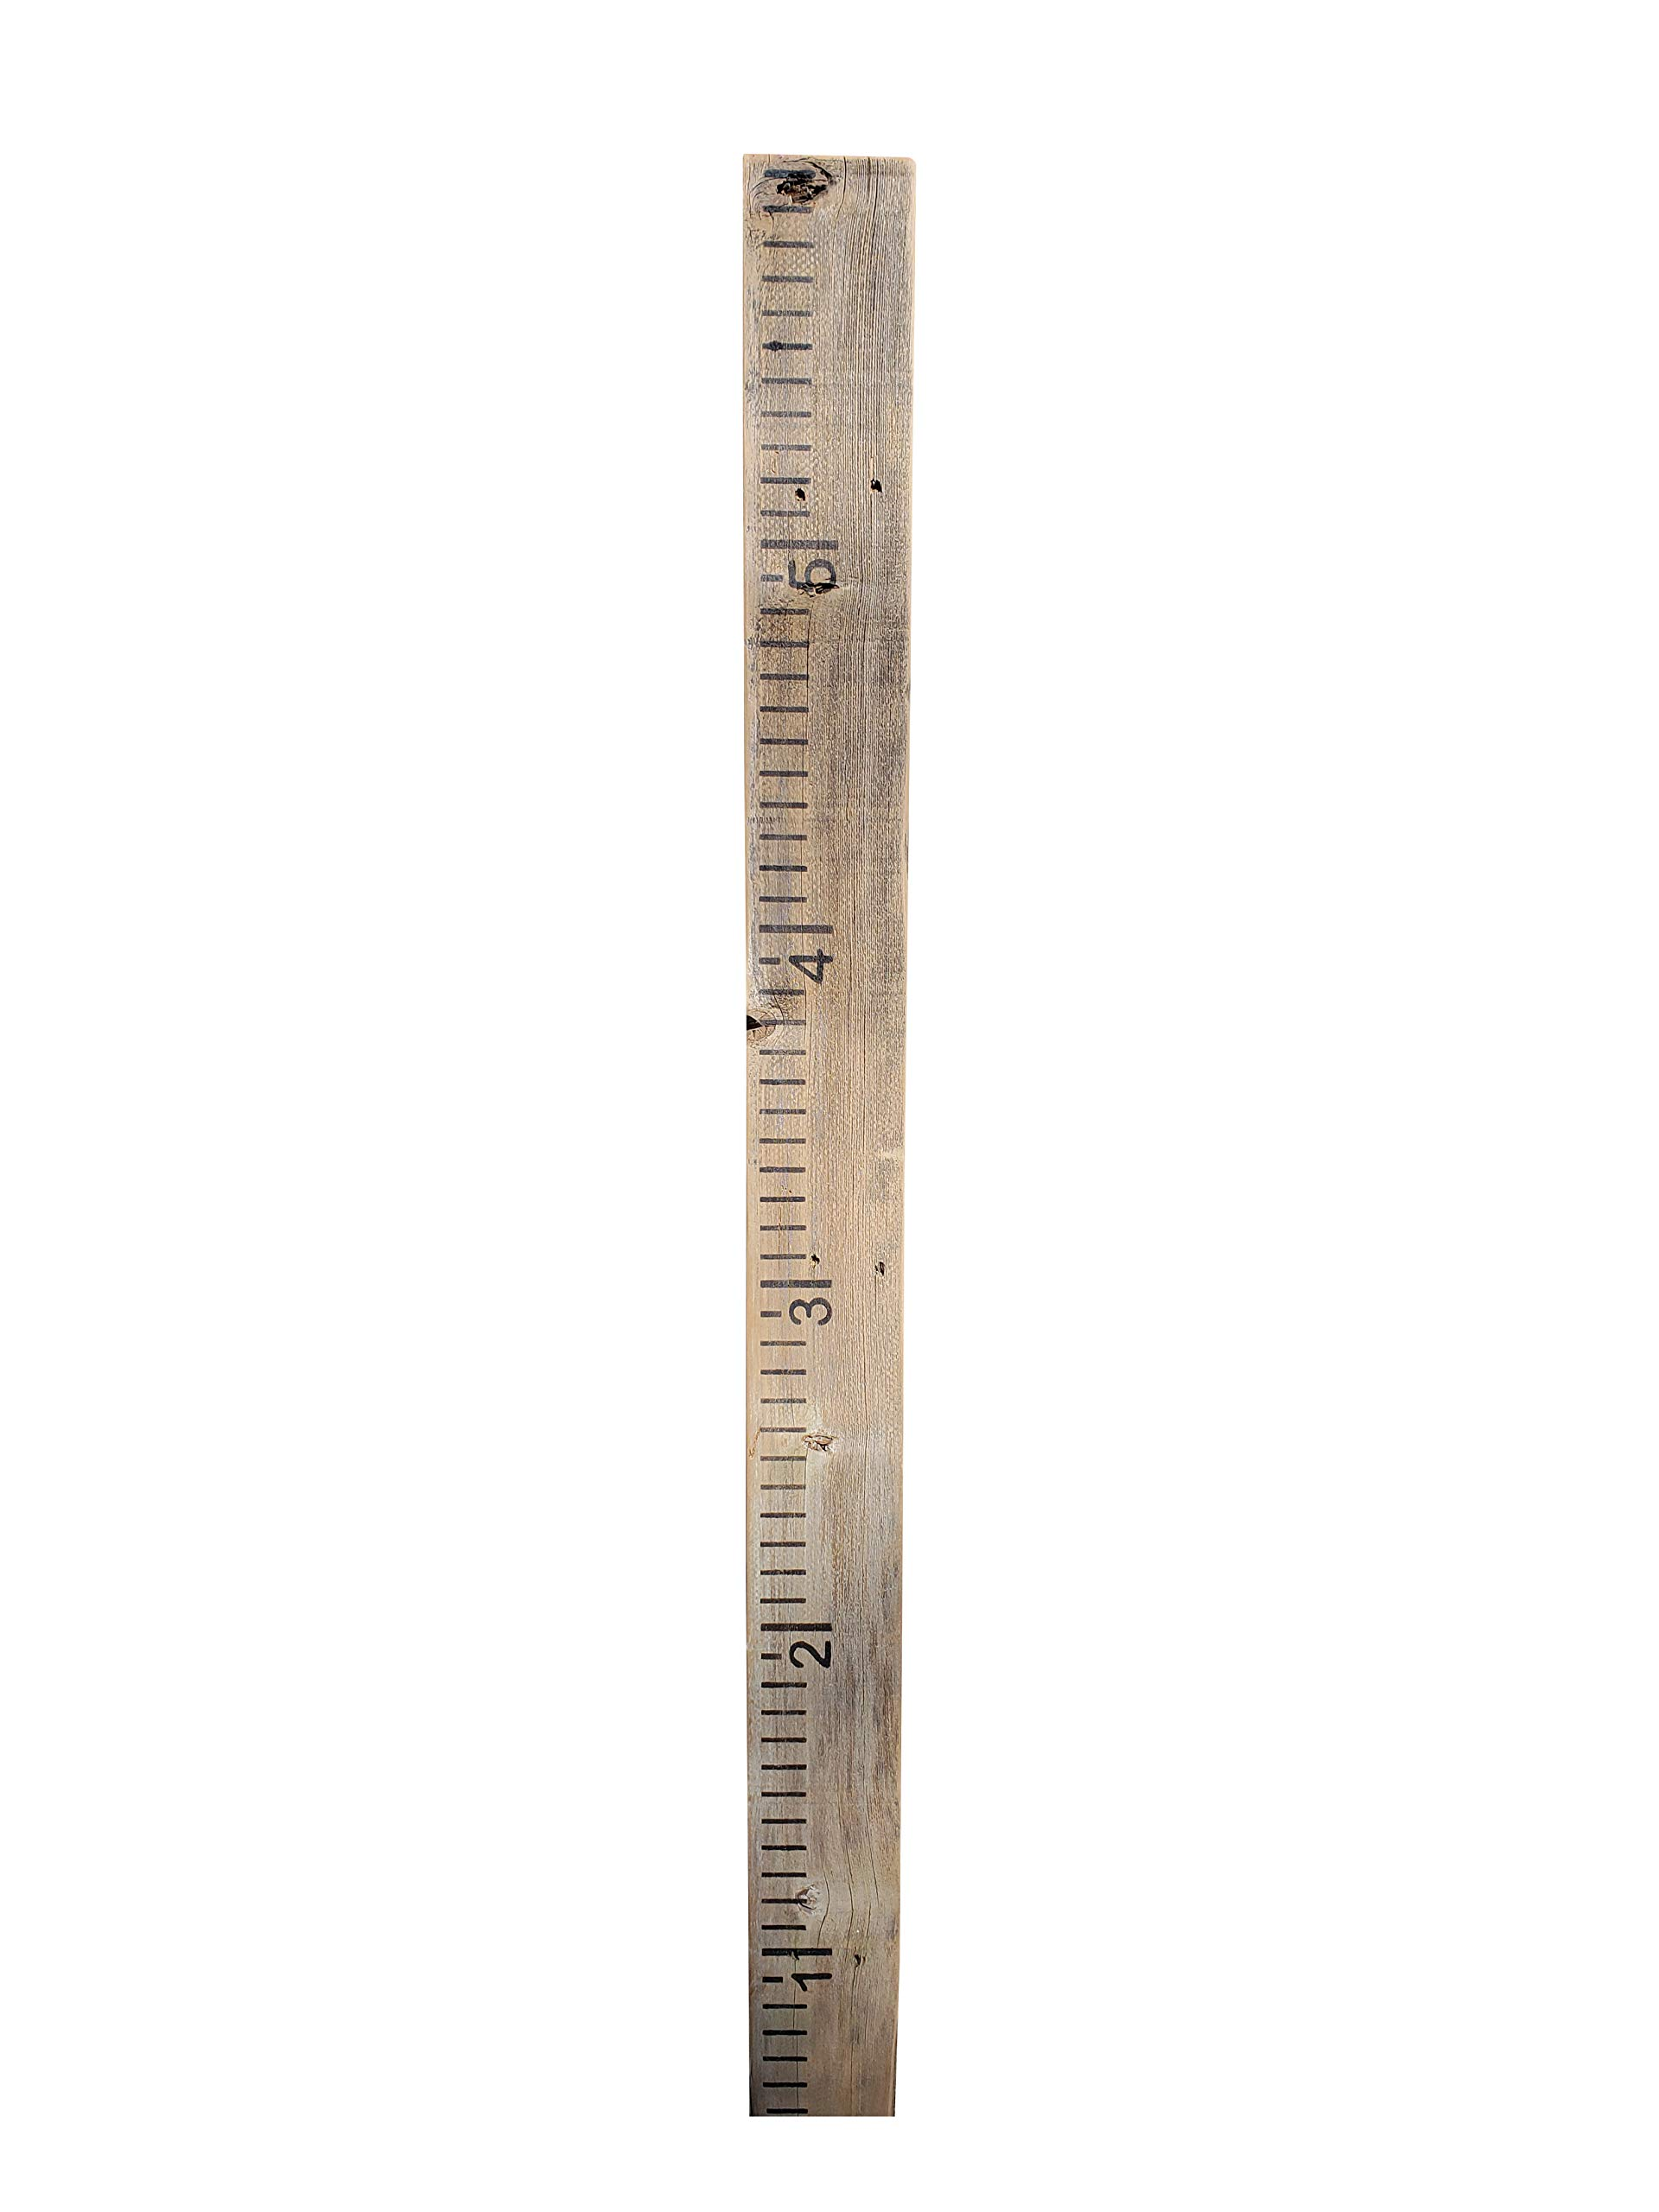 Growth Chart for Kids Made from Reclaimed Rustic Wood - Hand Painted - No Vinyl (Weathered Grey)